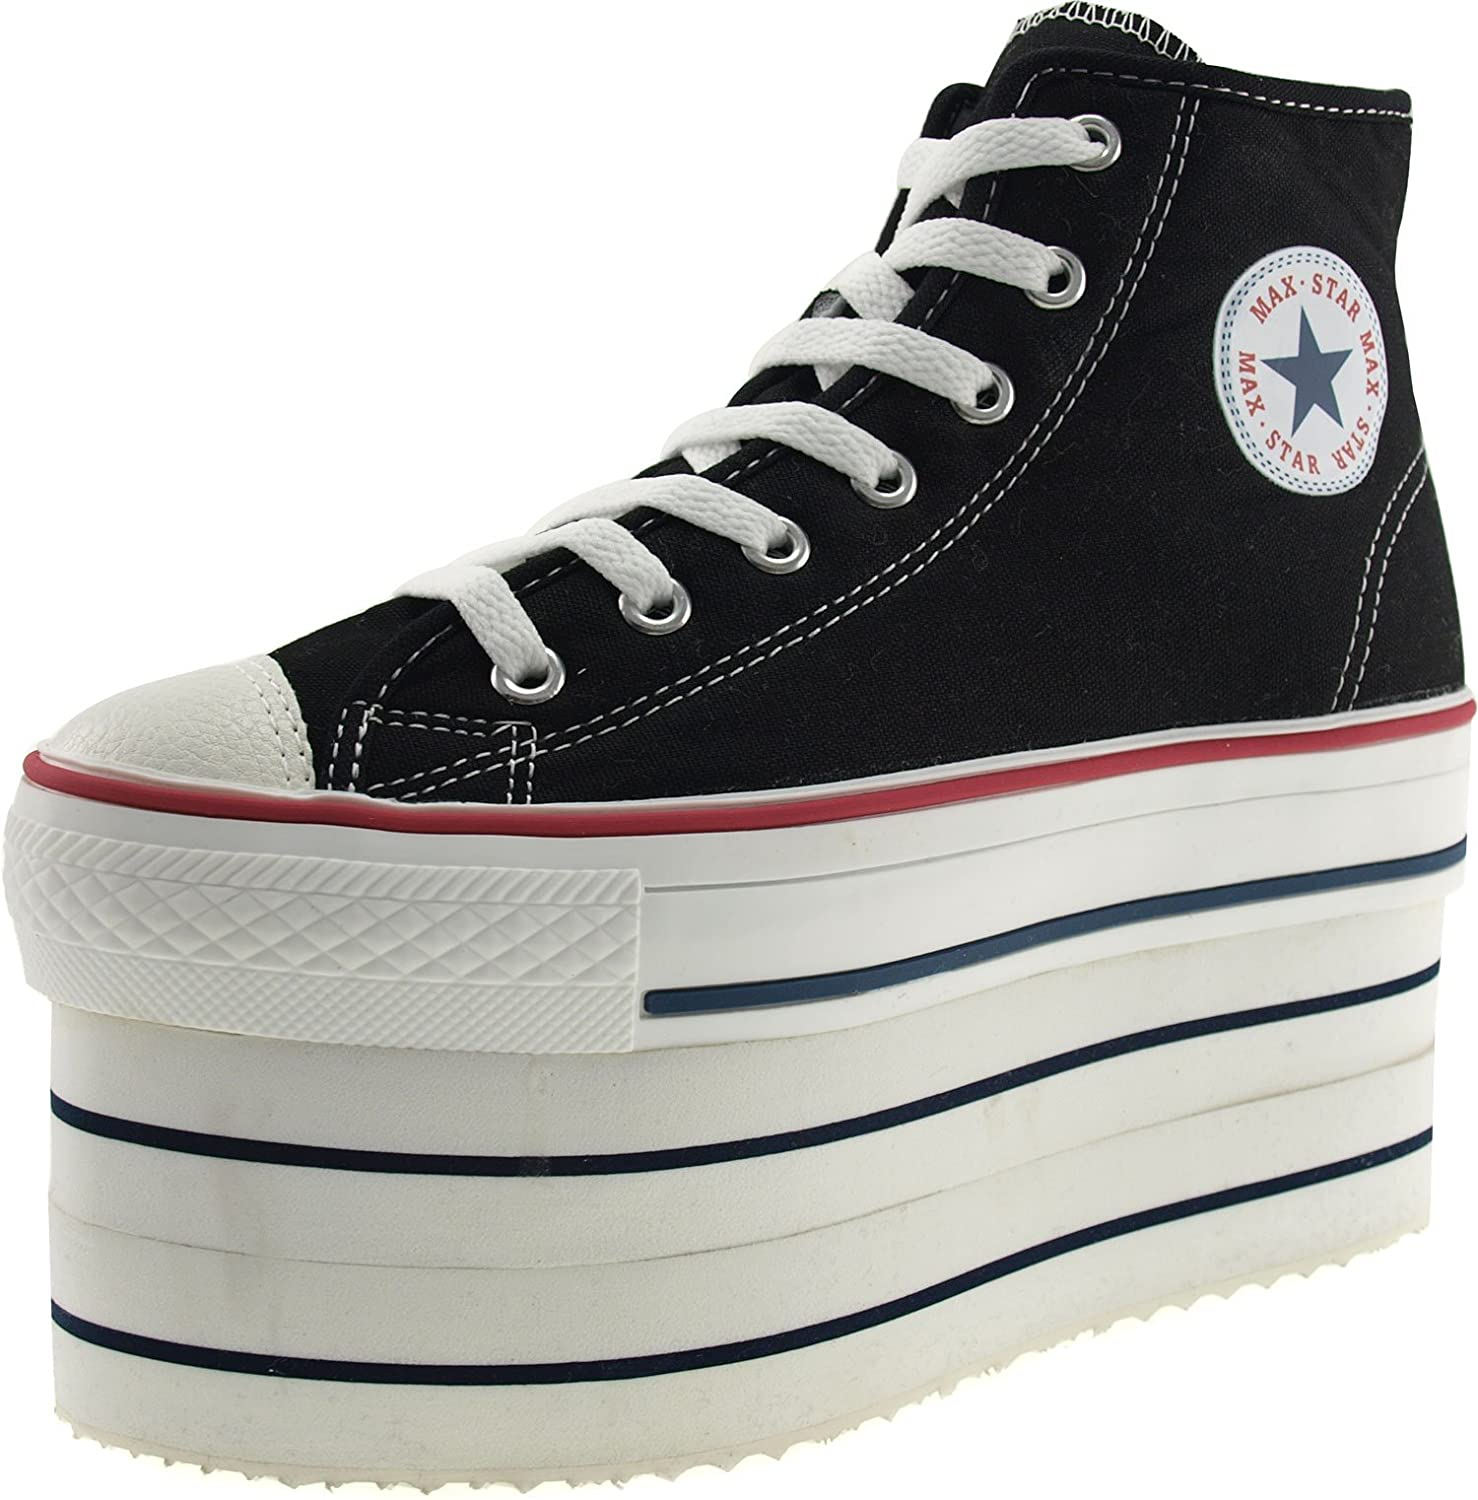 c1ebb958c6dae Maxstar Super Double Platform Zipper Canvas Sneakers Shoes